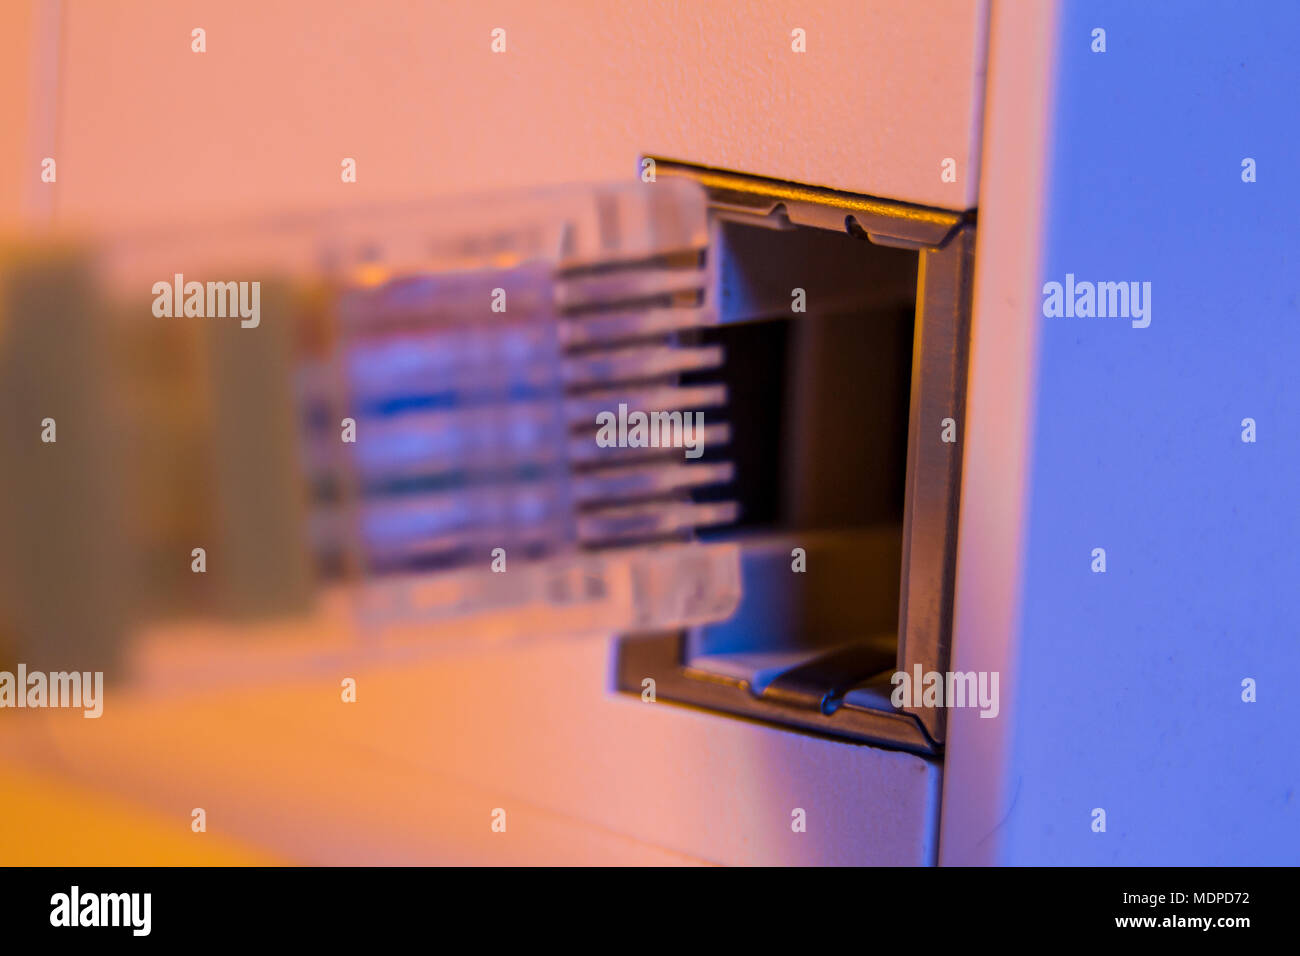 Networking Equipment Stock Photos 26416electricpanelpanelwiringjpg Macro Close Up Of Insert Ethernet Cable Into Wifi Extender Device Which Is In Electrical Socket